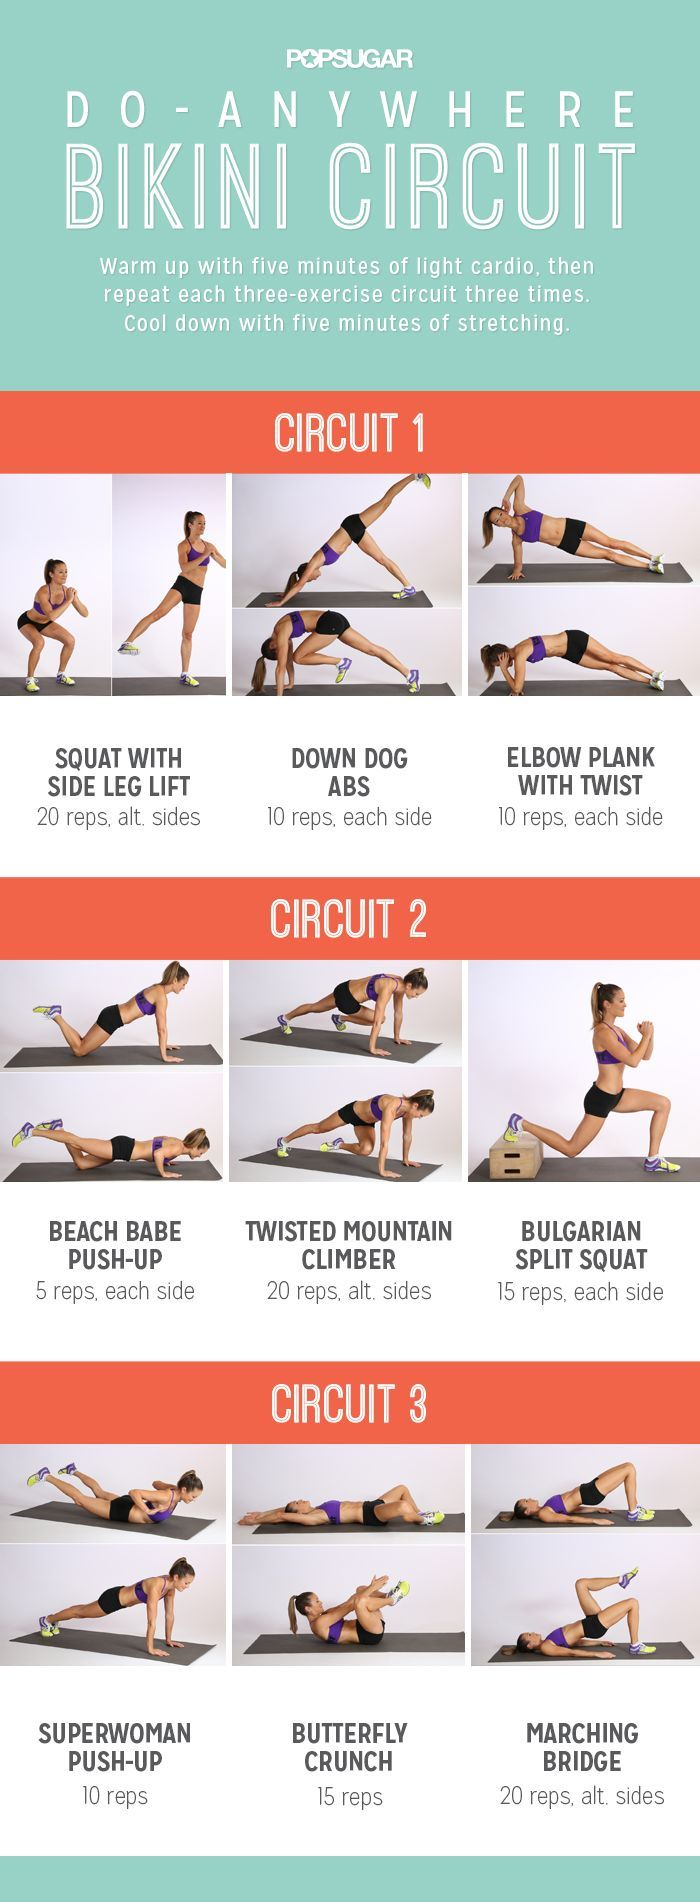 Printable, Do-Anywhere Bikini Workout - You can work out anywhere! Tone all over with this printable strength-training plan. The only equipment you need is your body, so no excuses! If one of the moves is new to you, don't skip it: you can learn the details of each move here.